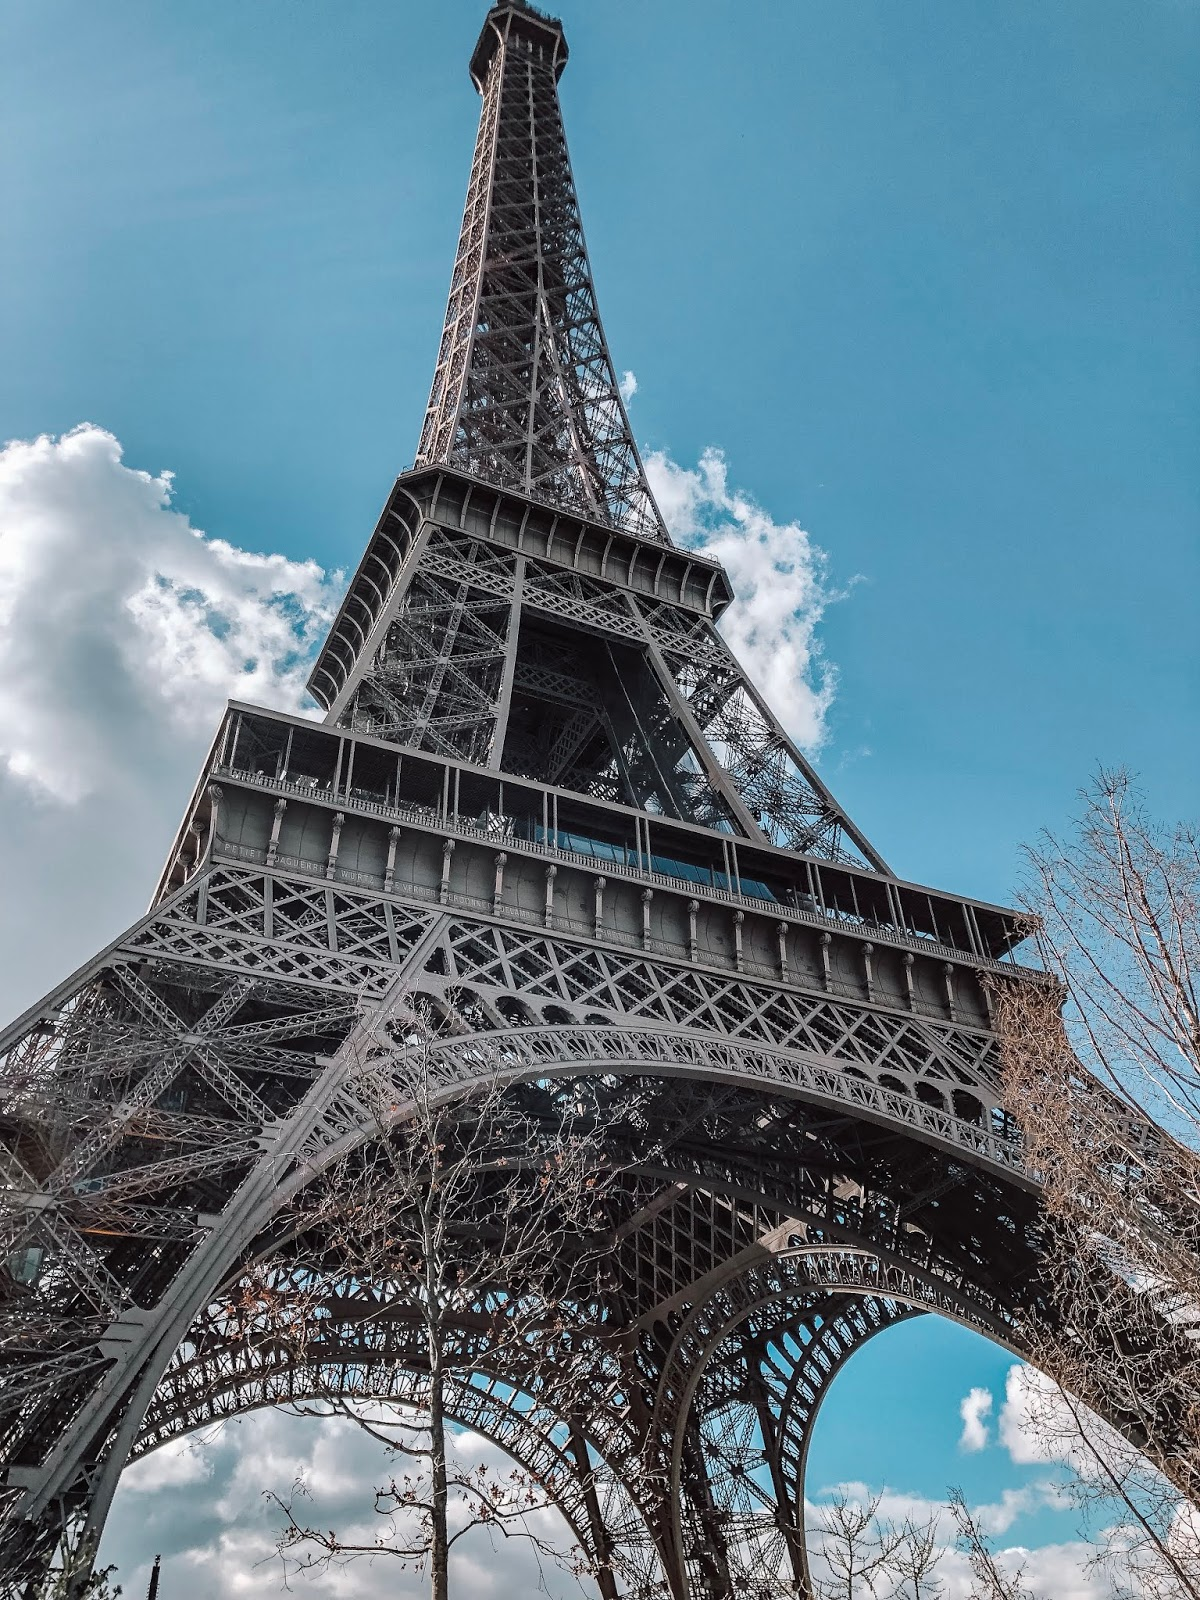 a view of the eiffel tower in paris, france